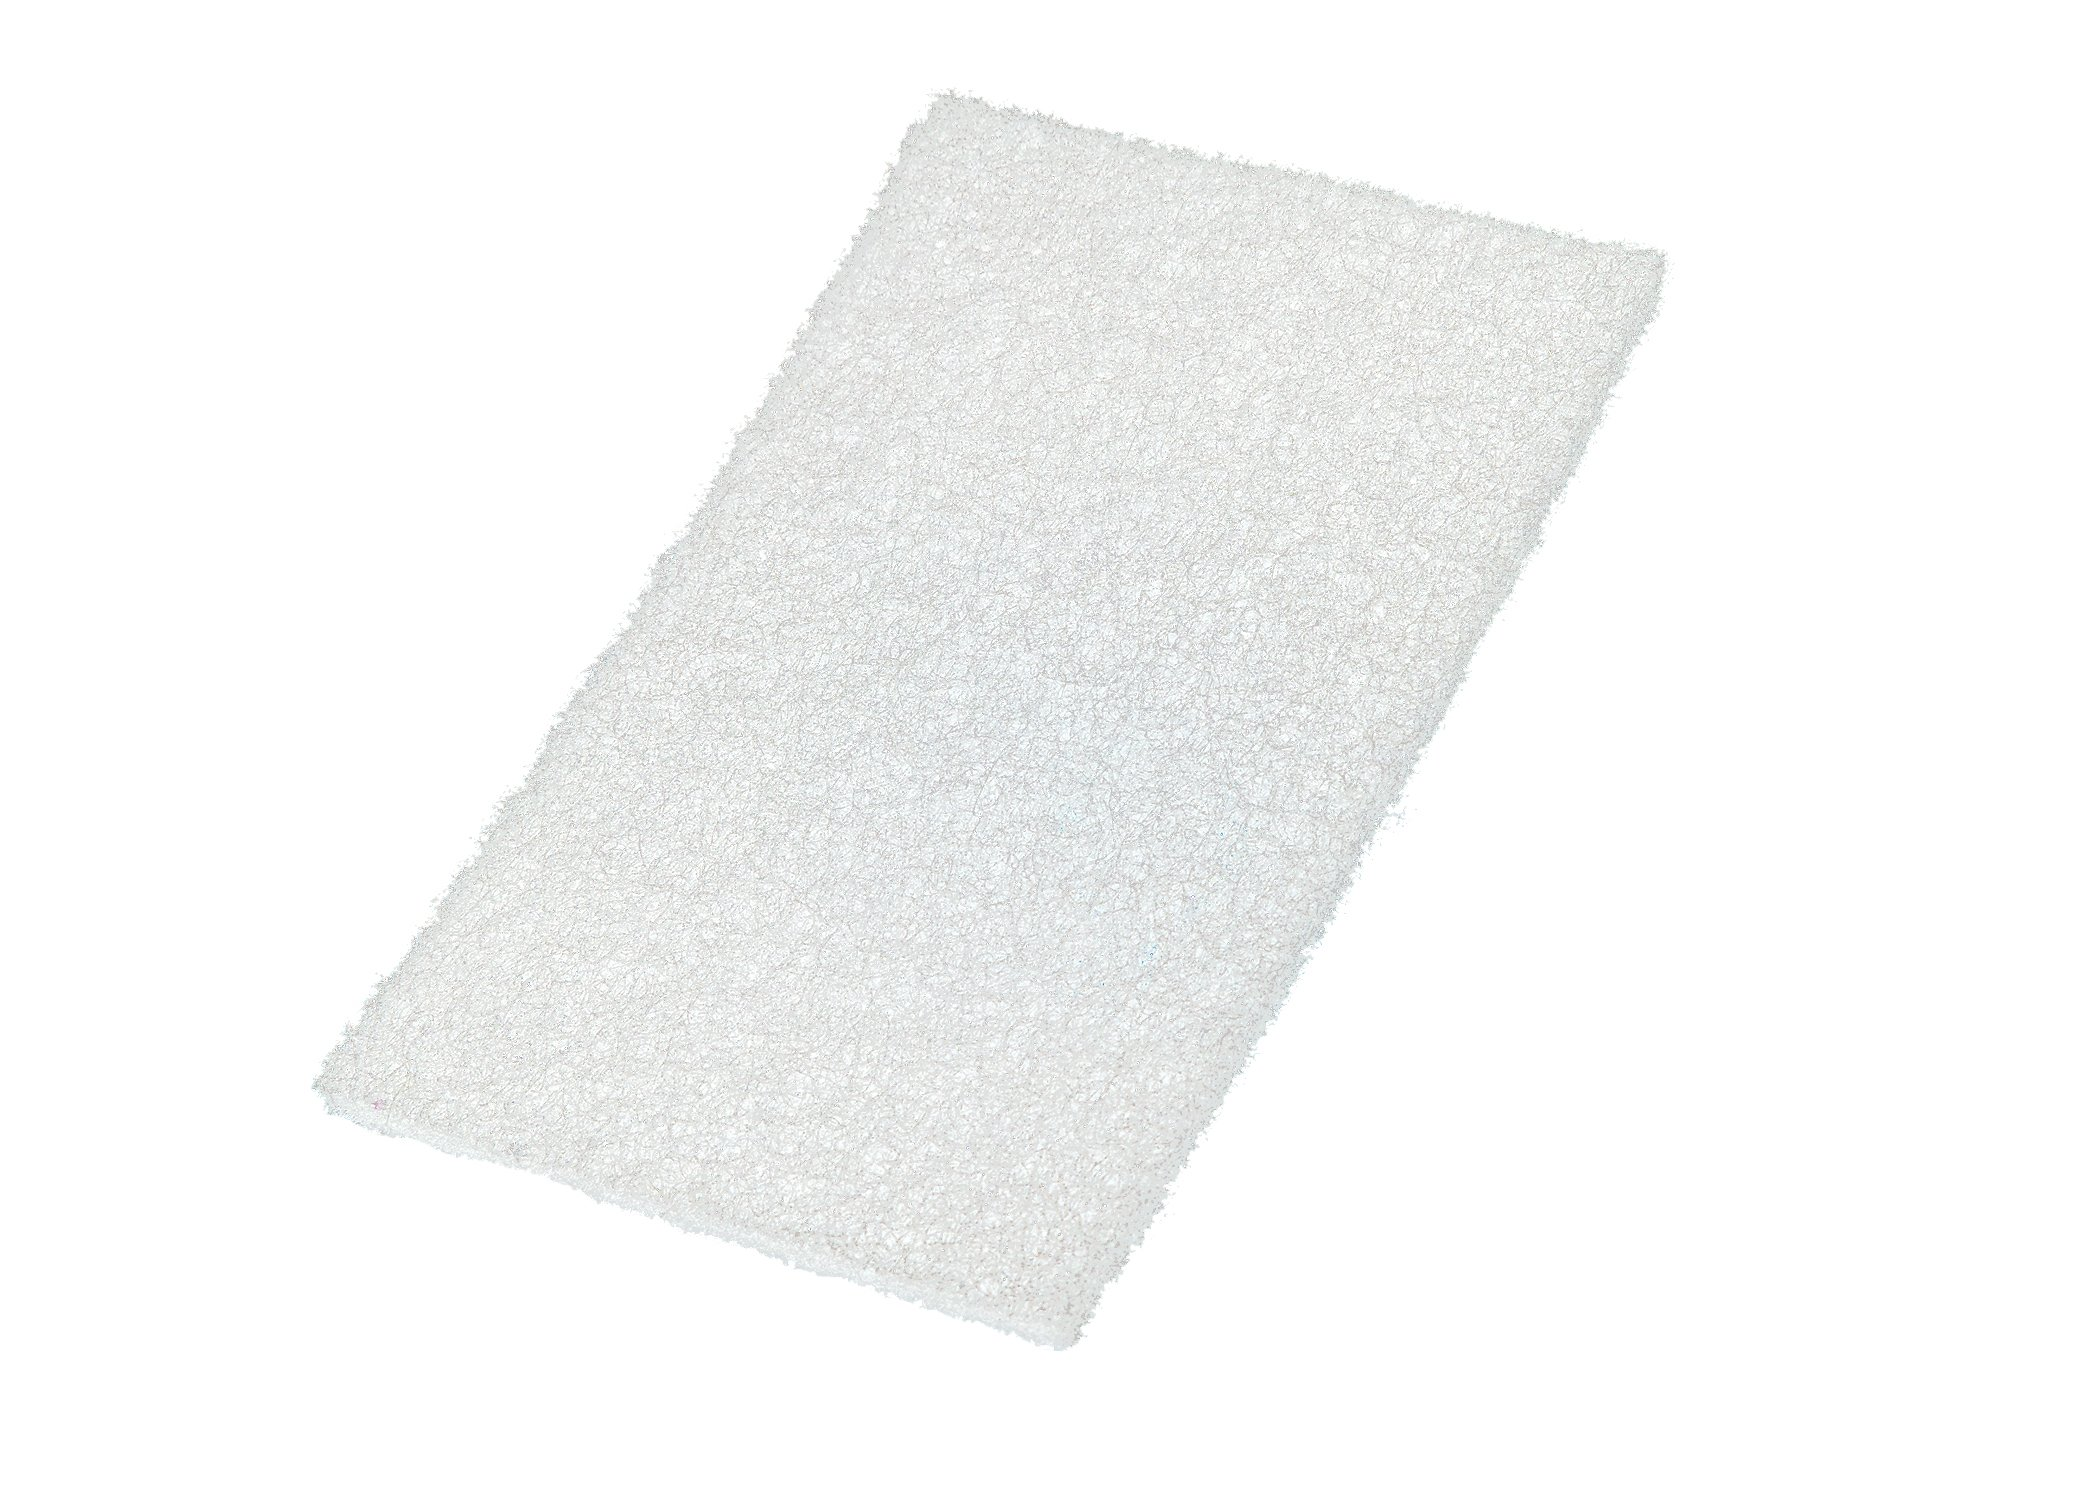 VSM 401246 Abrasive Hand Pad, White, 6'' x 9'' (Pack of 10) by VSM